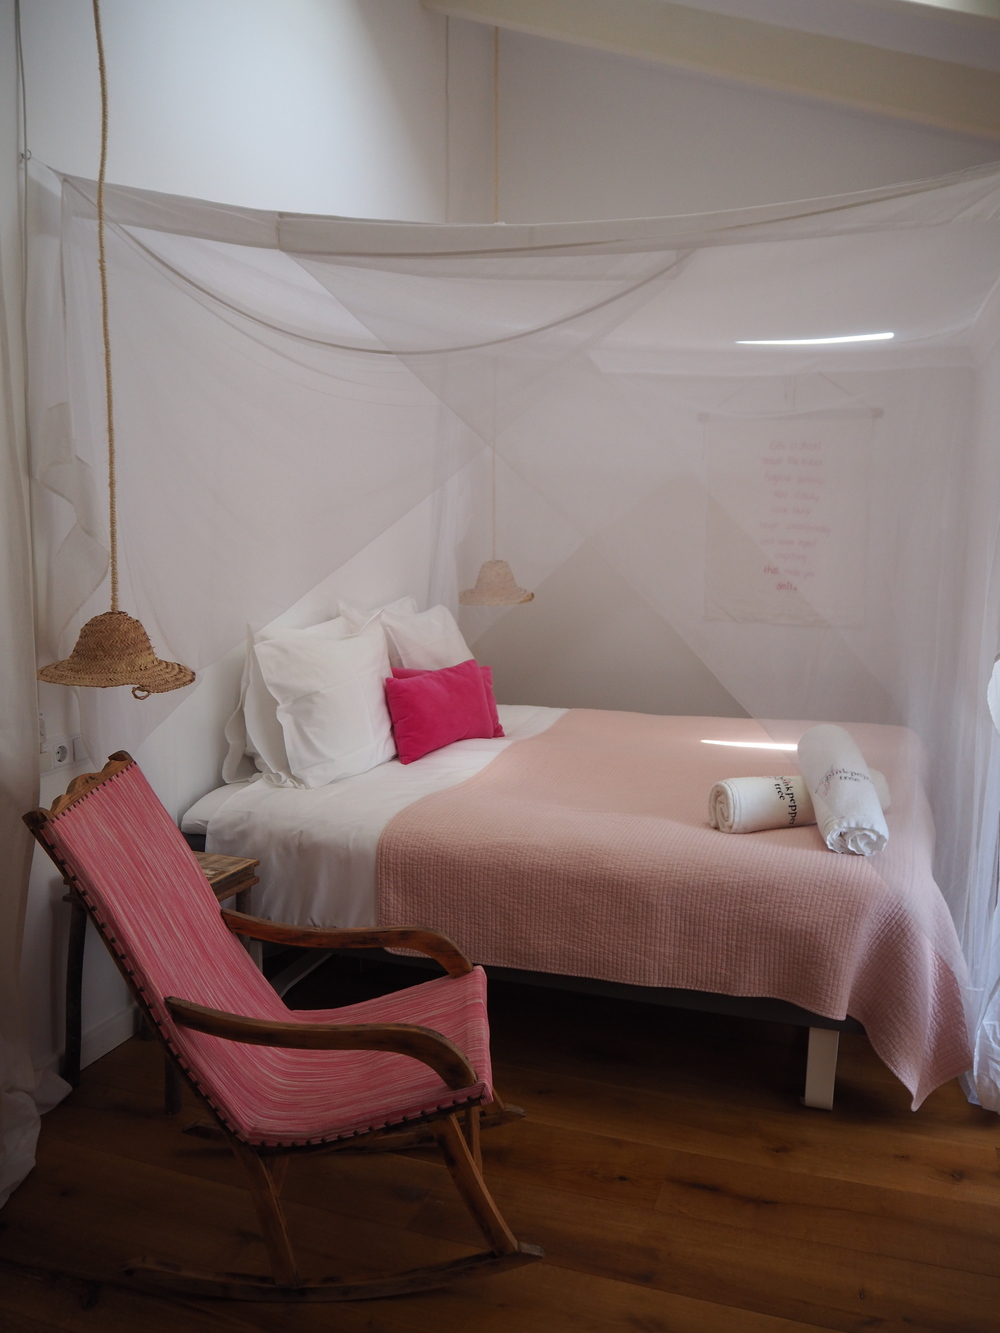 Mosquito nets at The pink Pepper Tree Hotel- Lloseta, Majoraca. A traditional Majorcan finca.